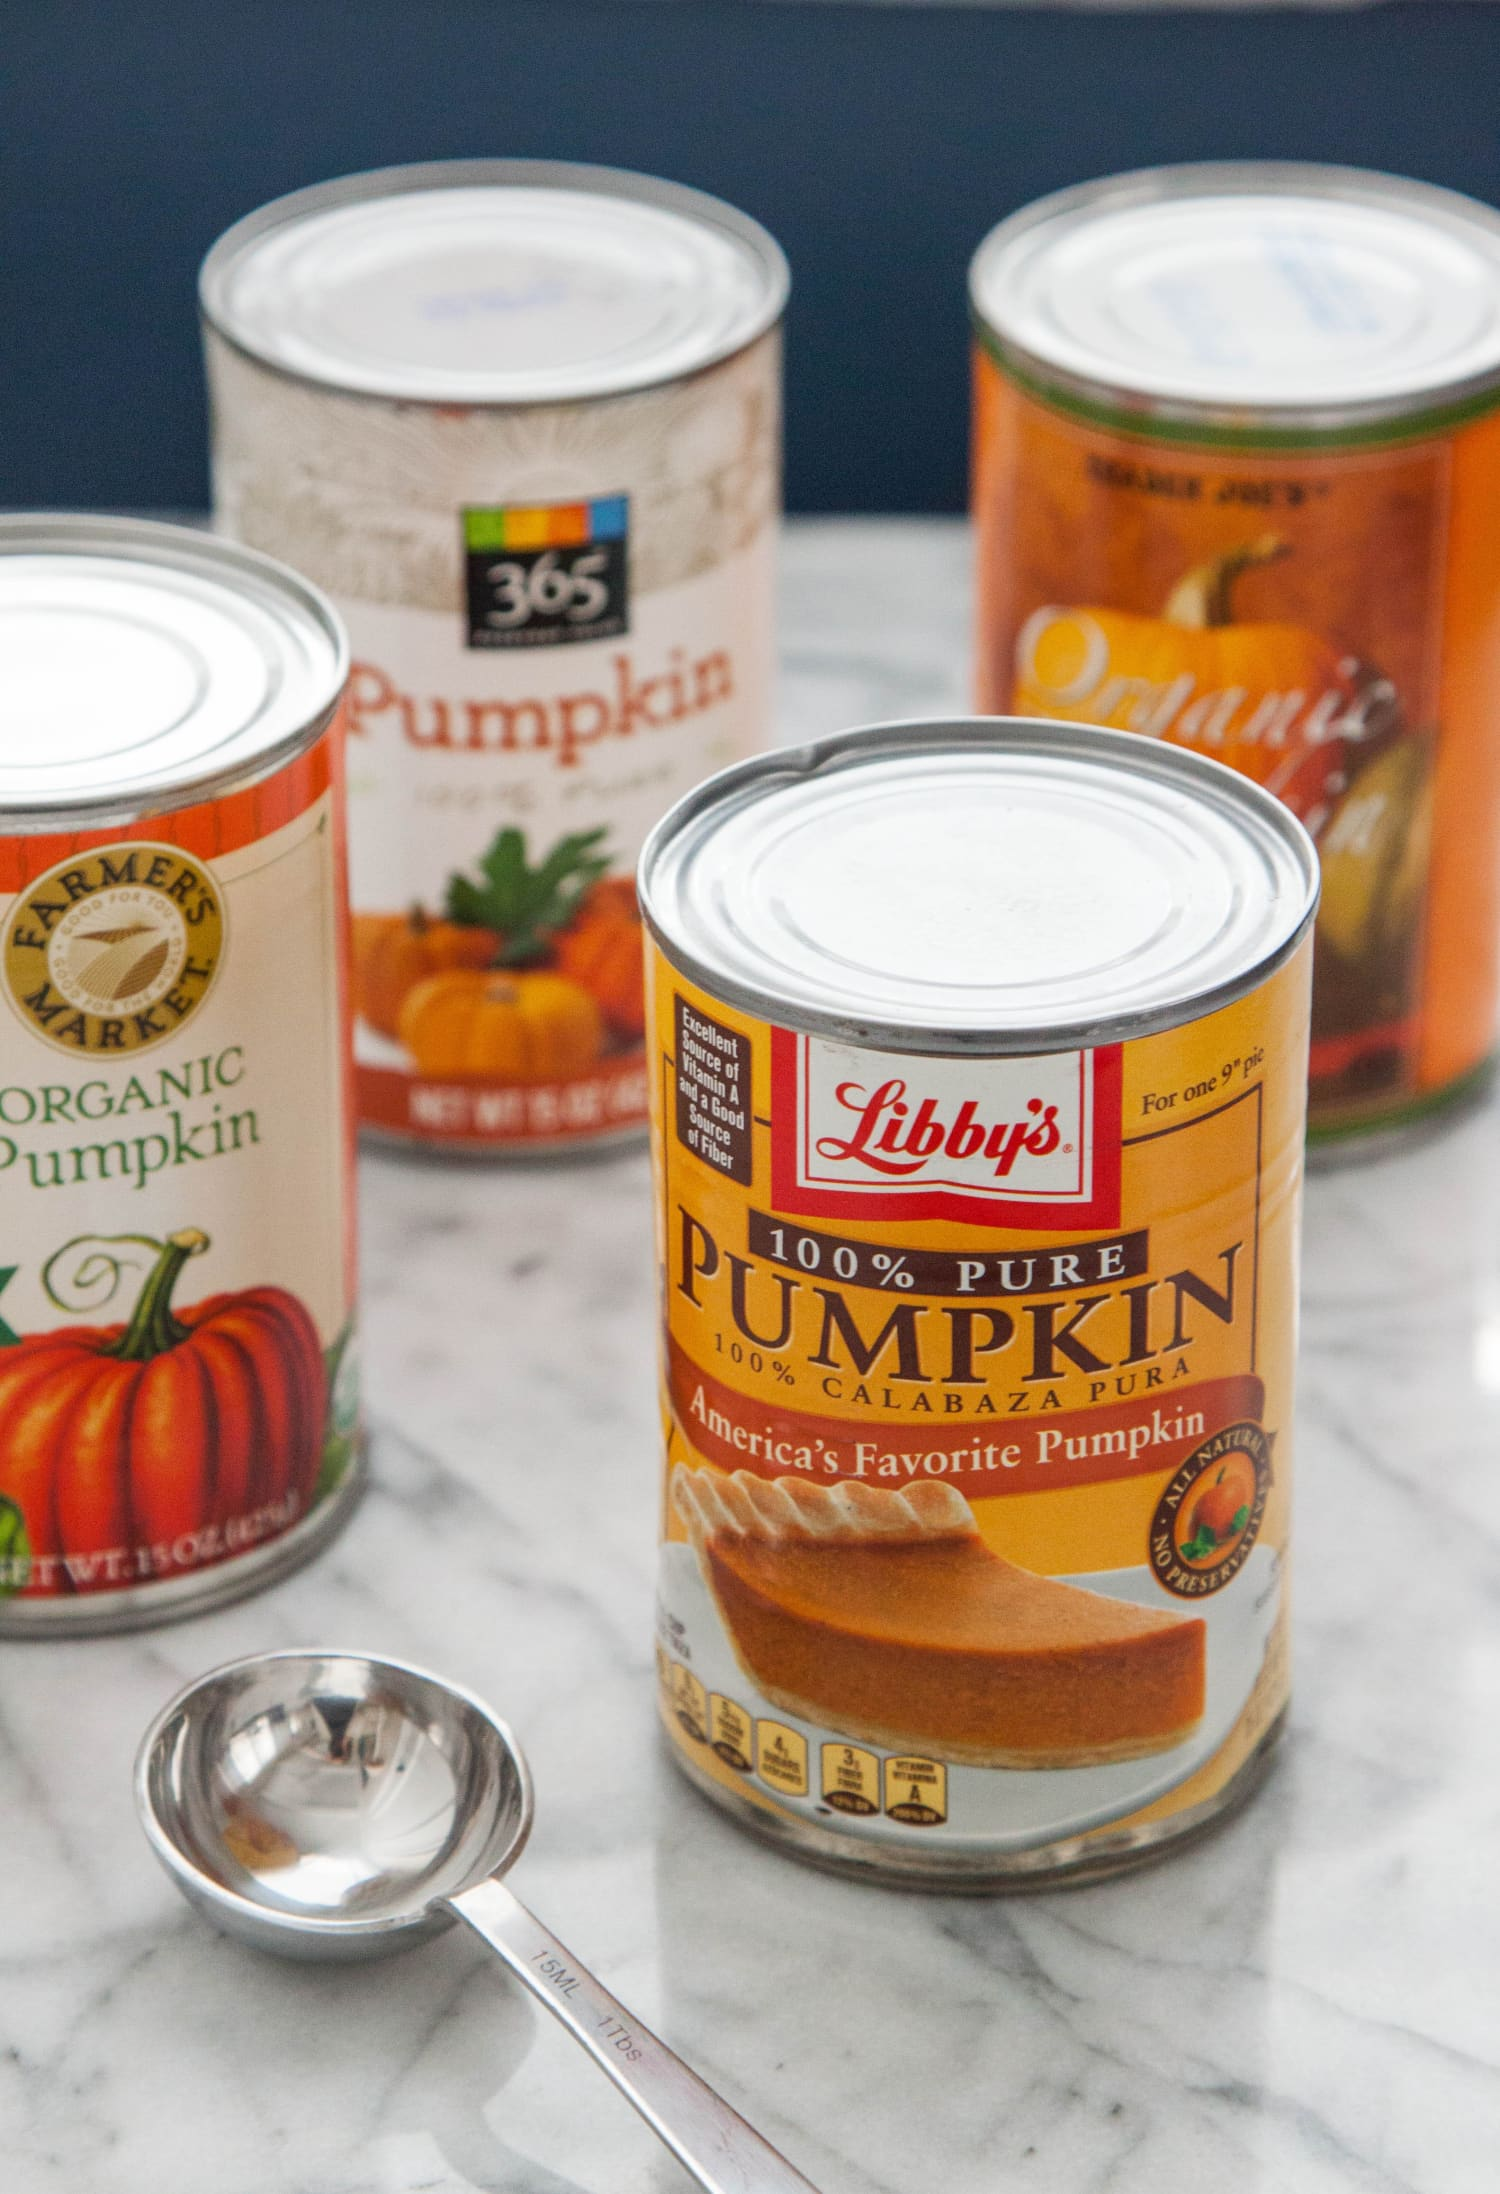 The Annual Canned Pumpkin Freak-out: Is It a Big Hoax ...